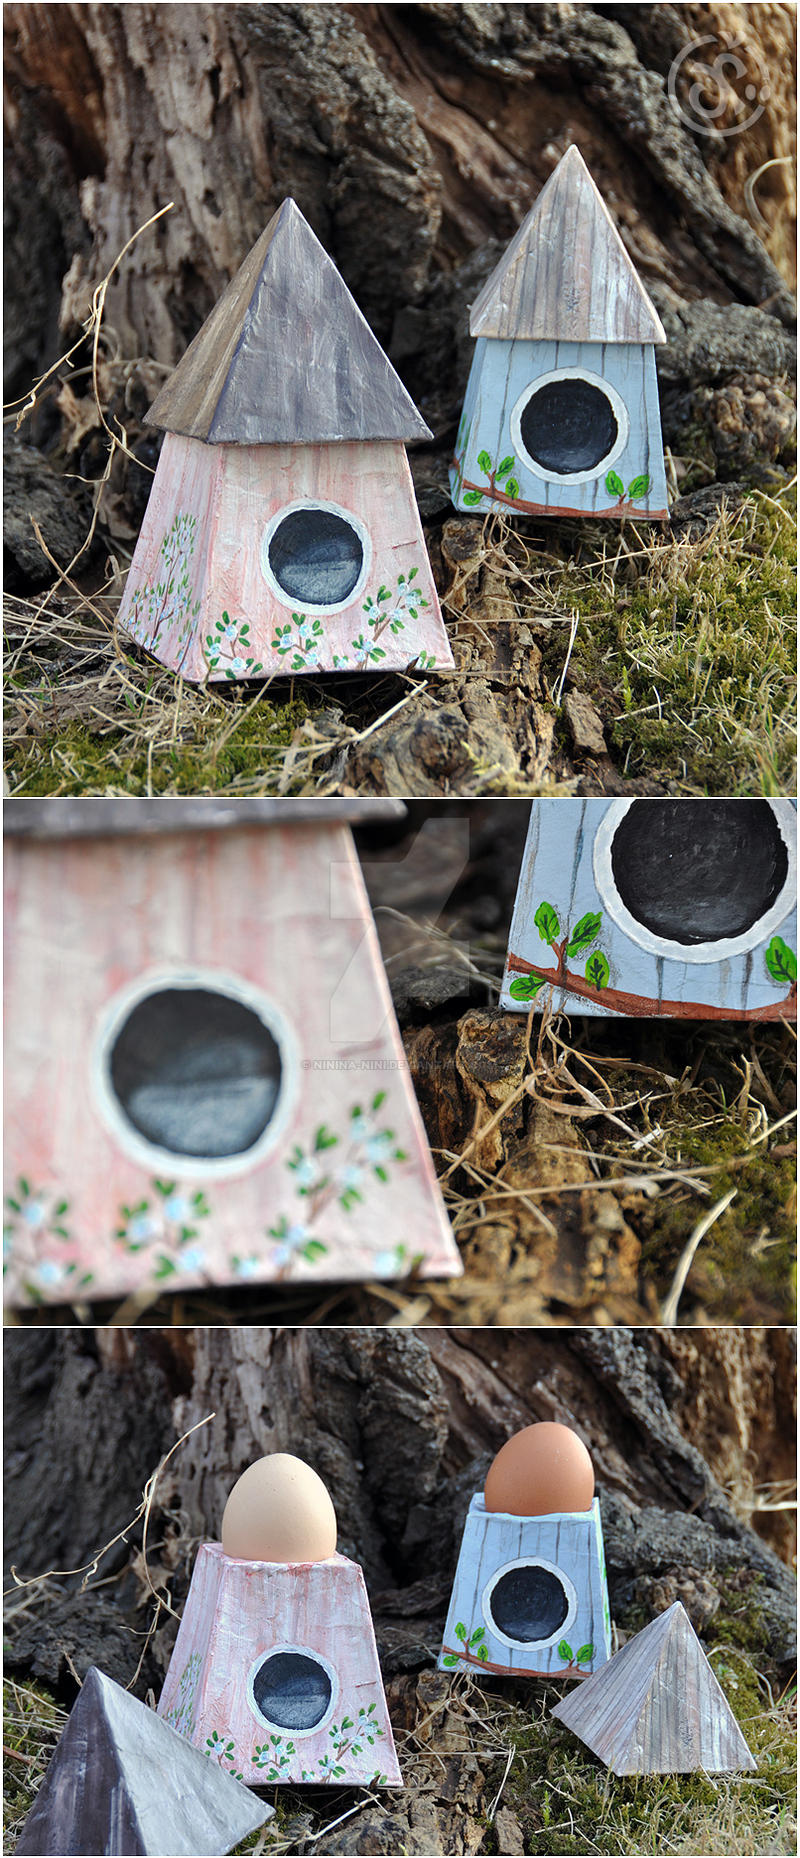 Egg House by Ninina-nini